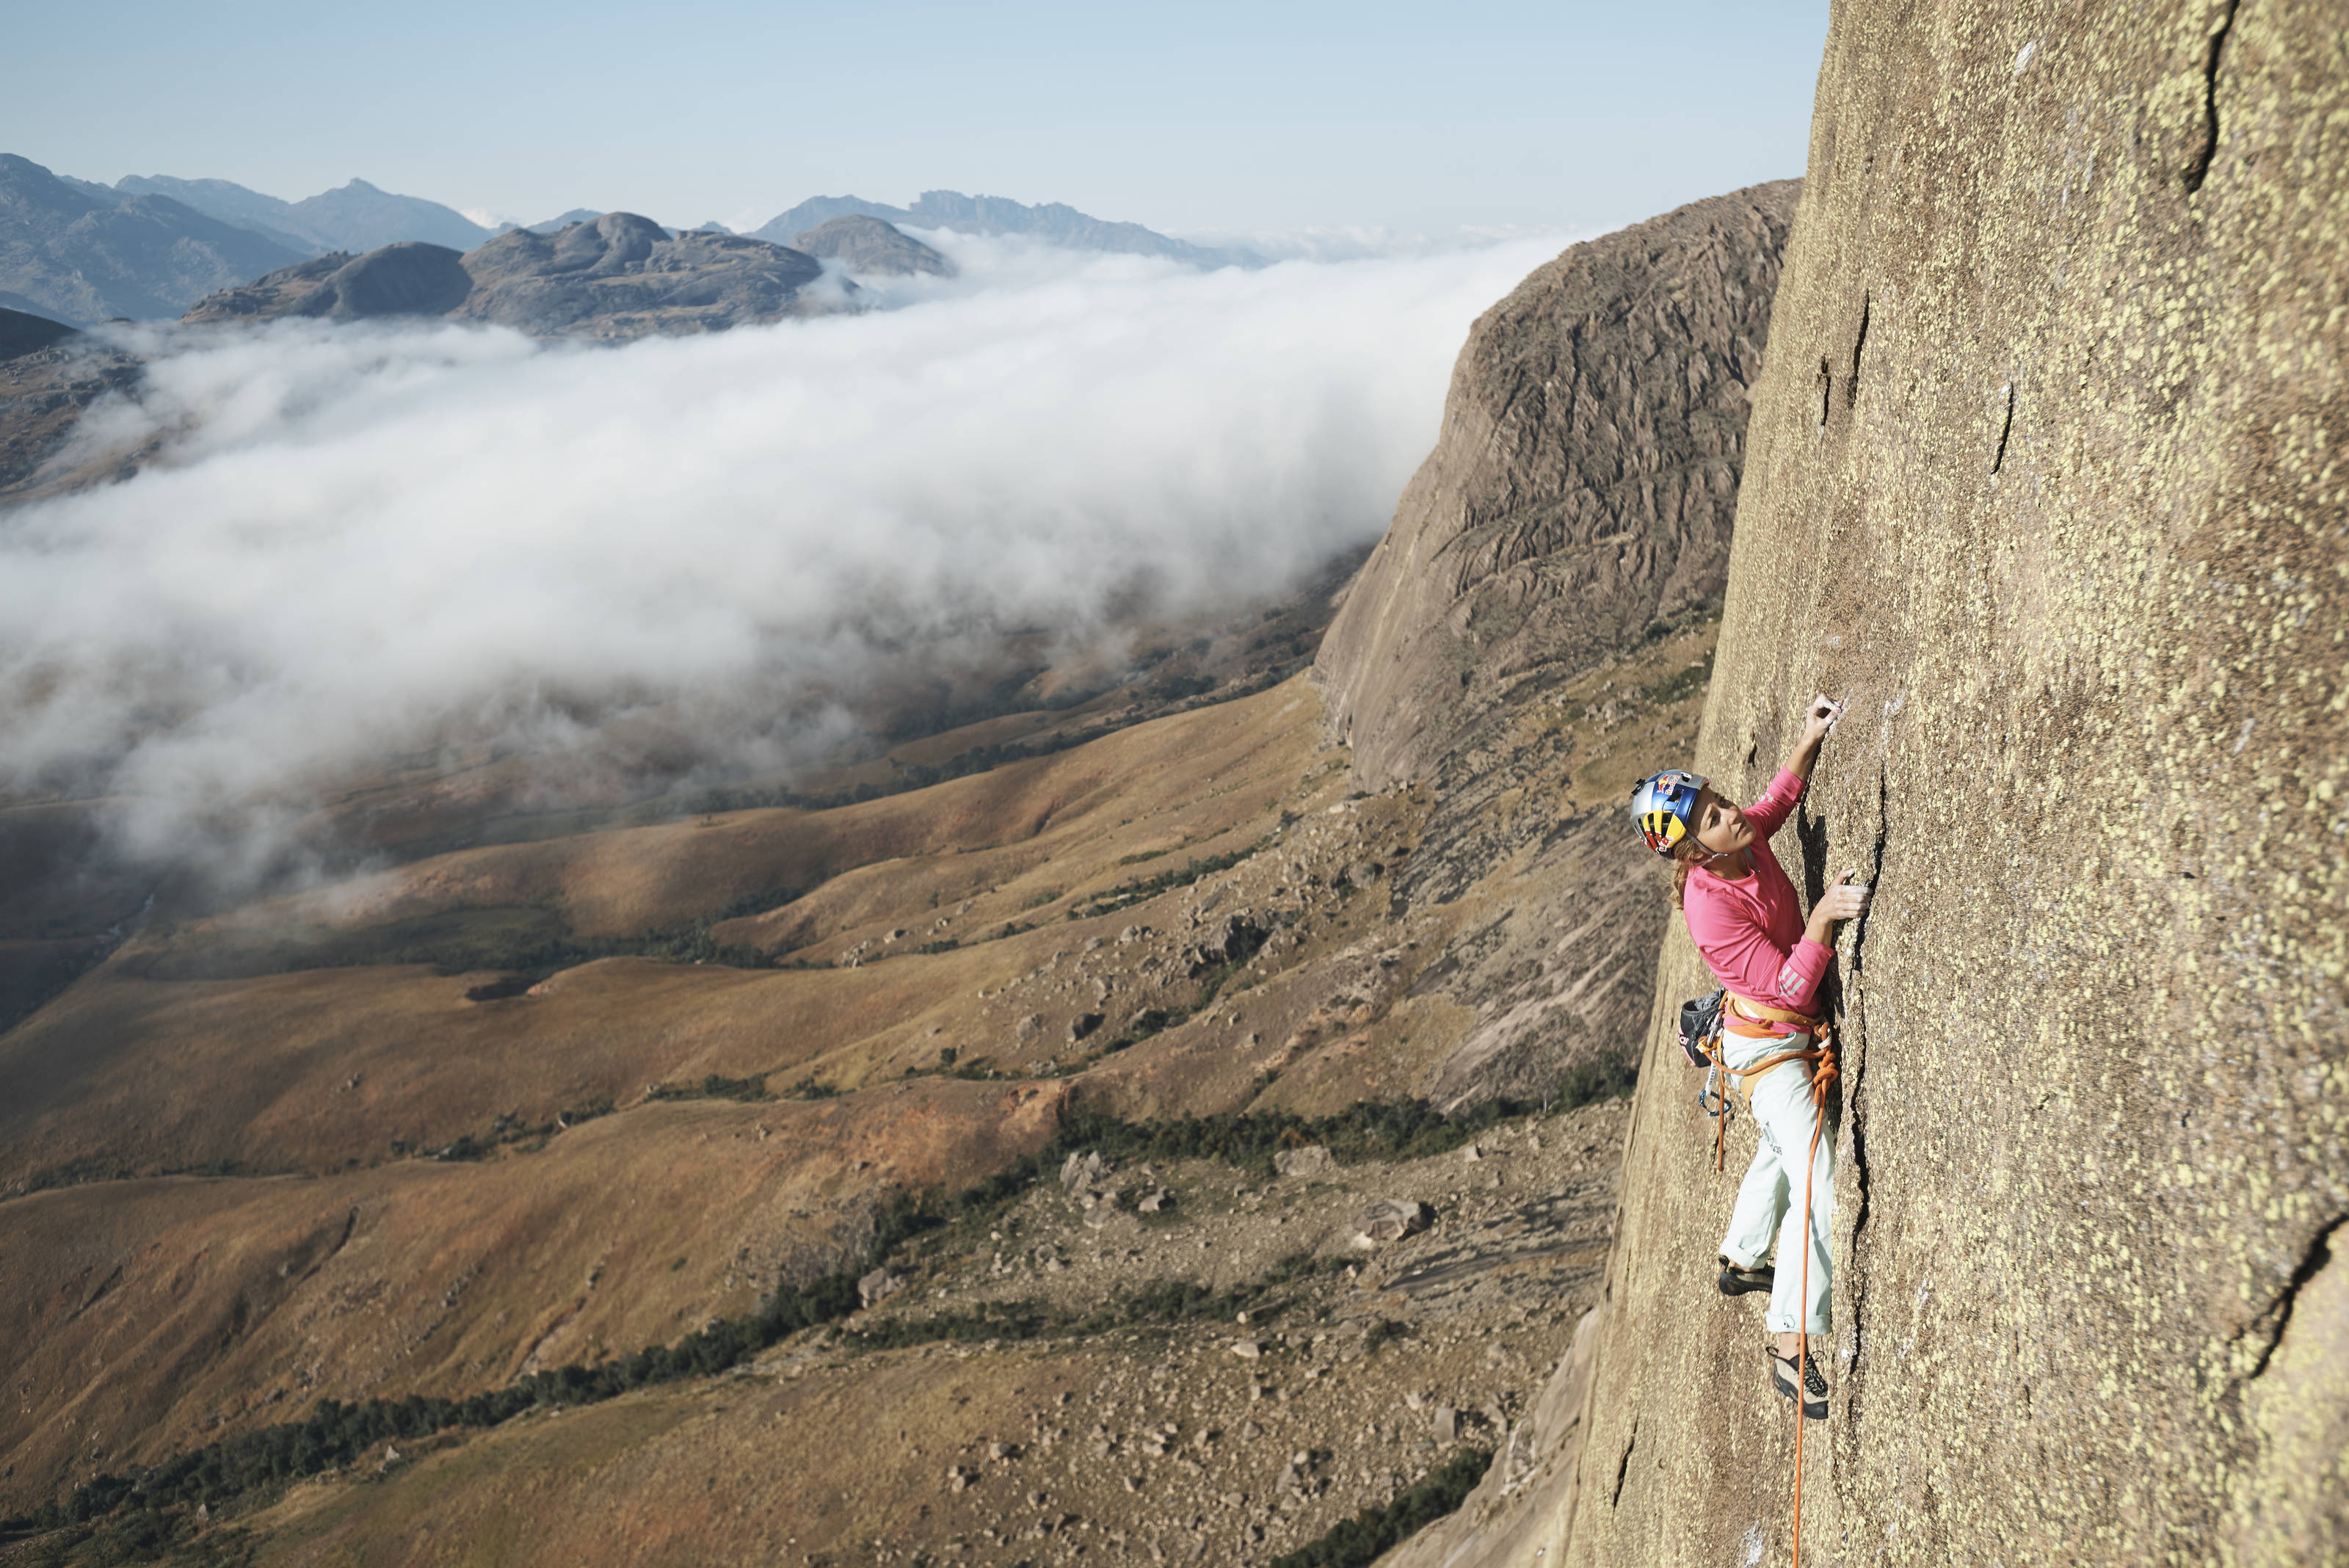 Sasha DiGiulian repeats Multi-pitch 'Mora Mora' (8c) (c) Francois Leabeau/Red Bull Content Pool